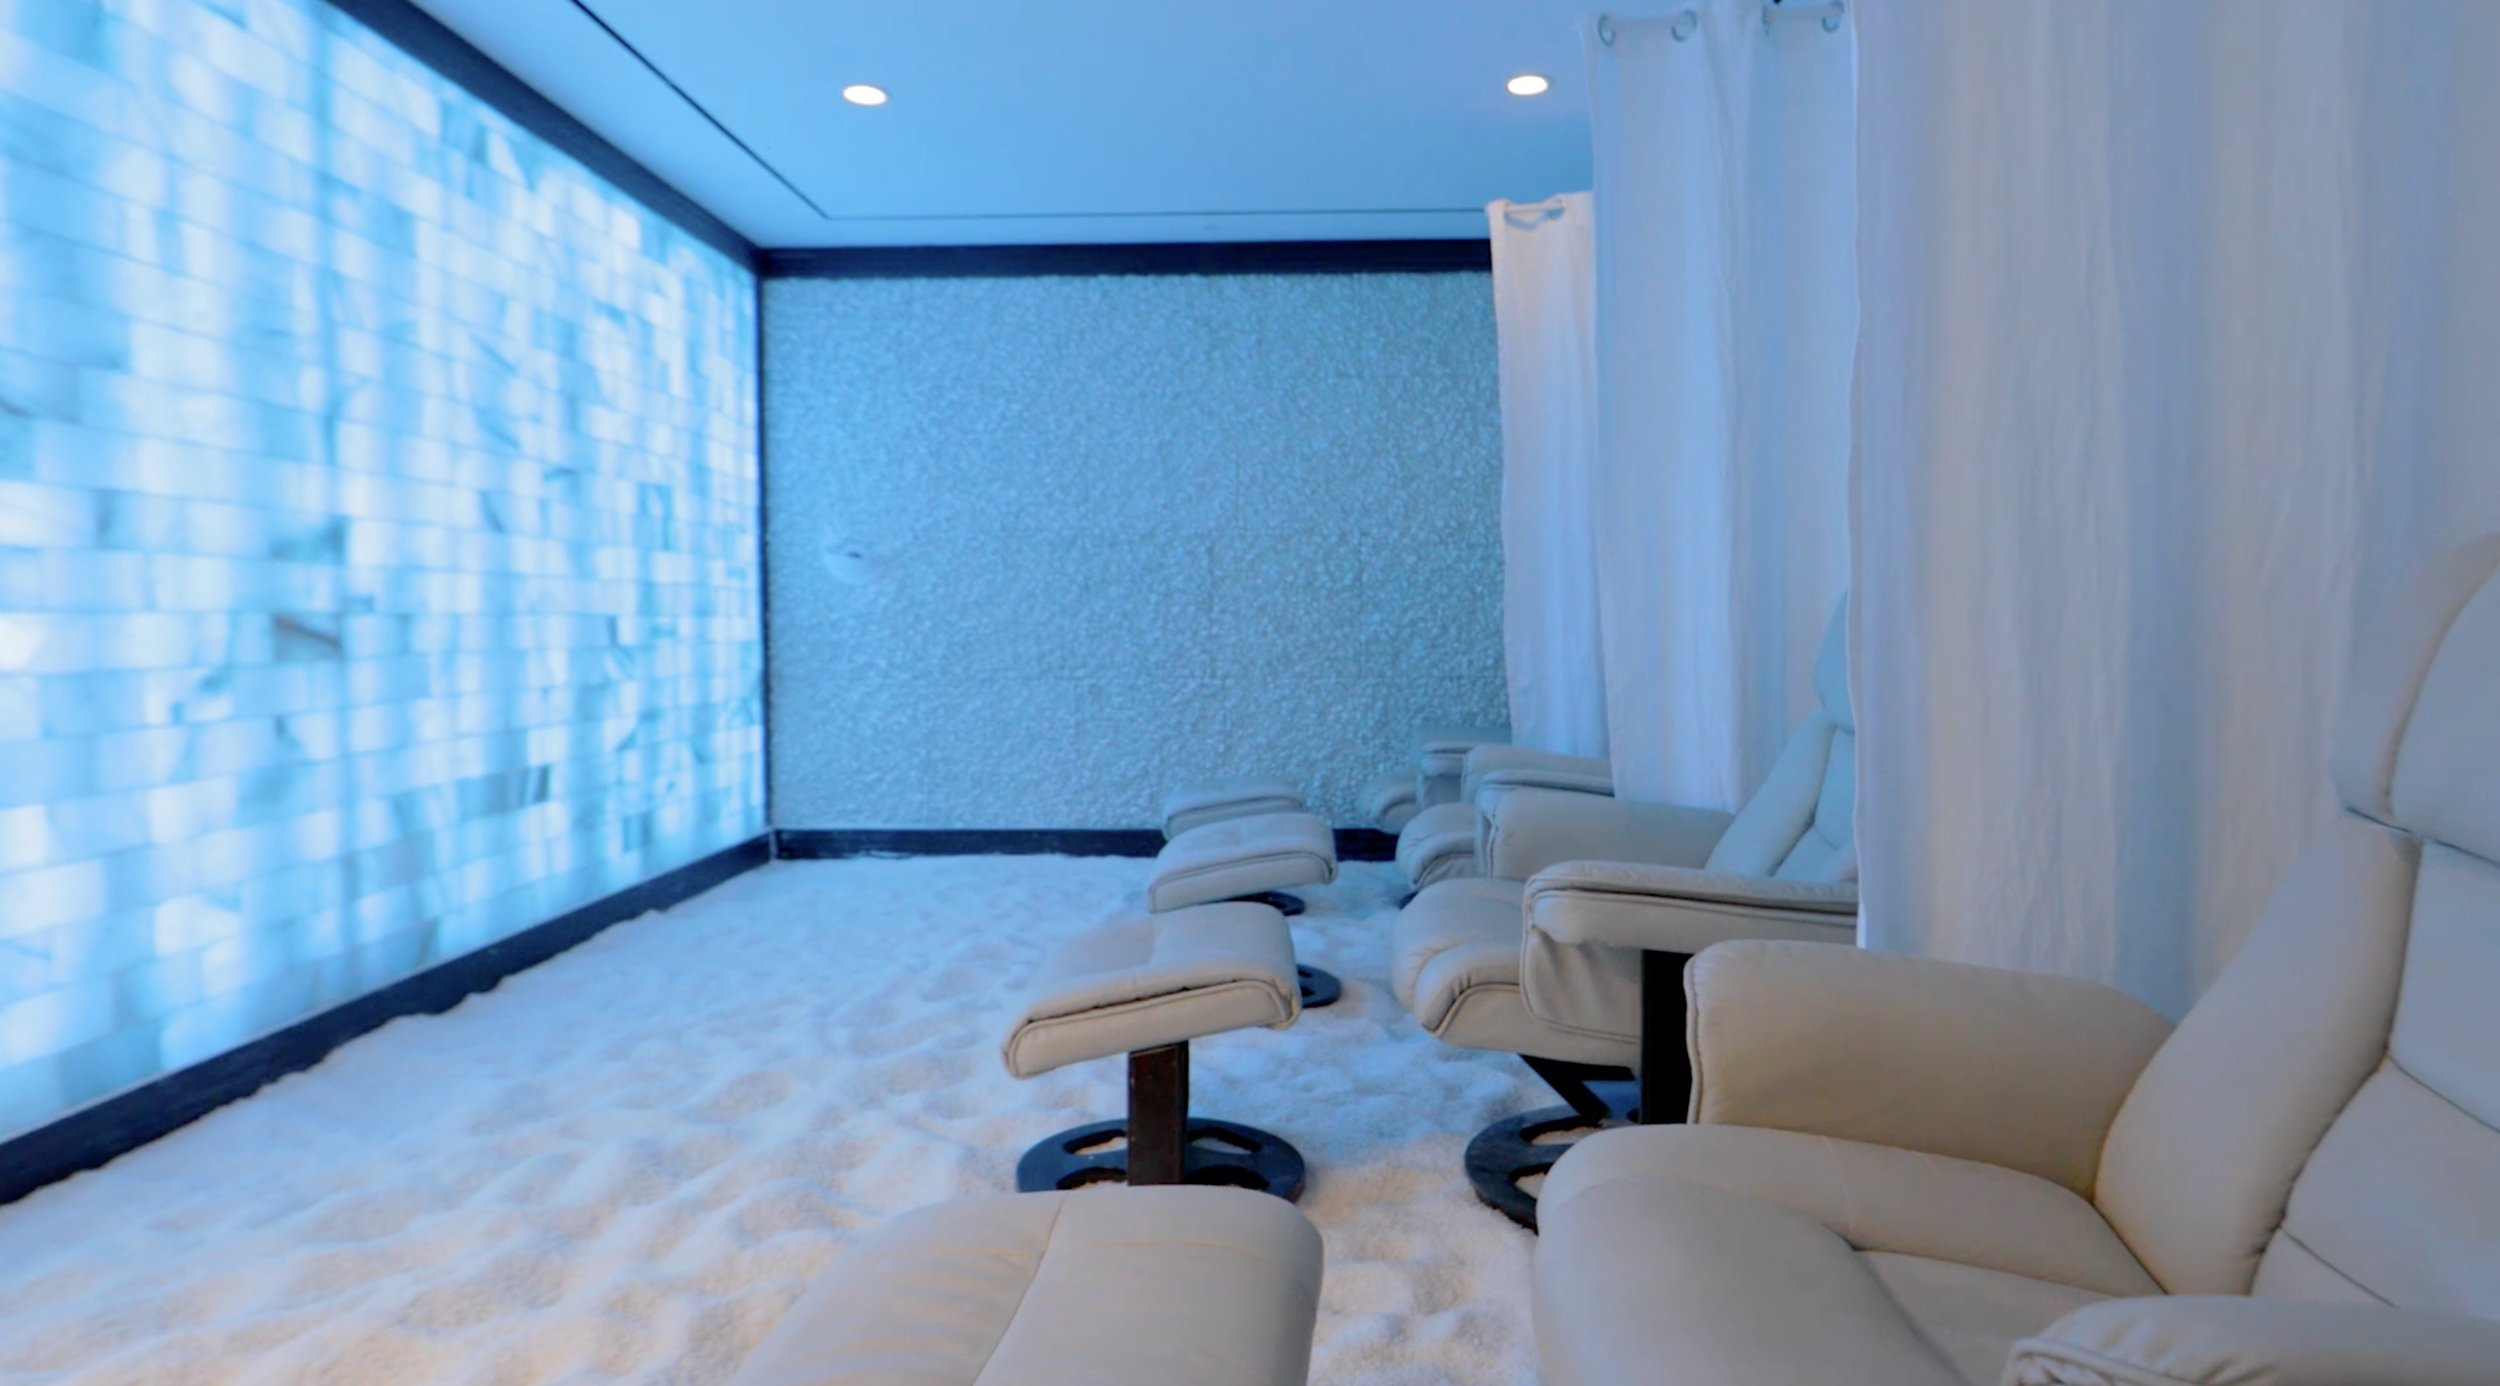 Salt rooms - We offer one group room and two private rooms at our Vero Beach location!